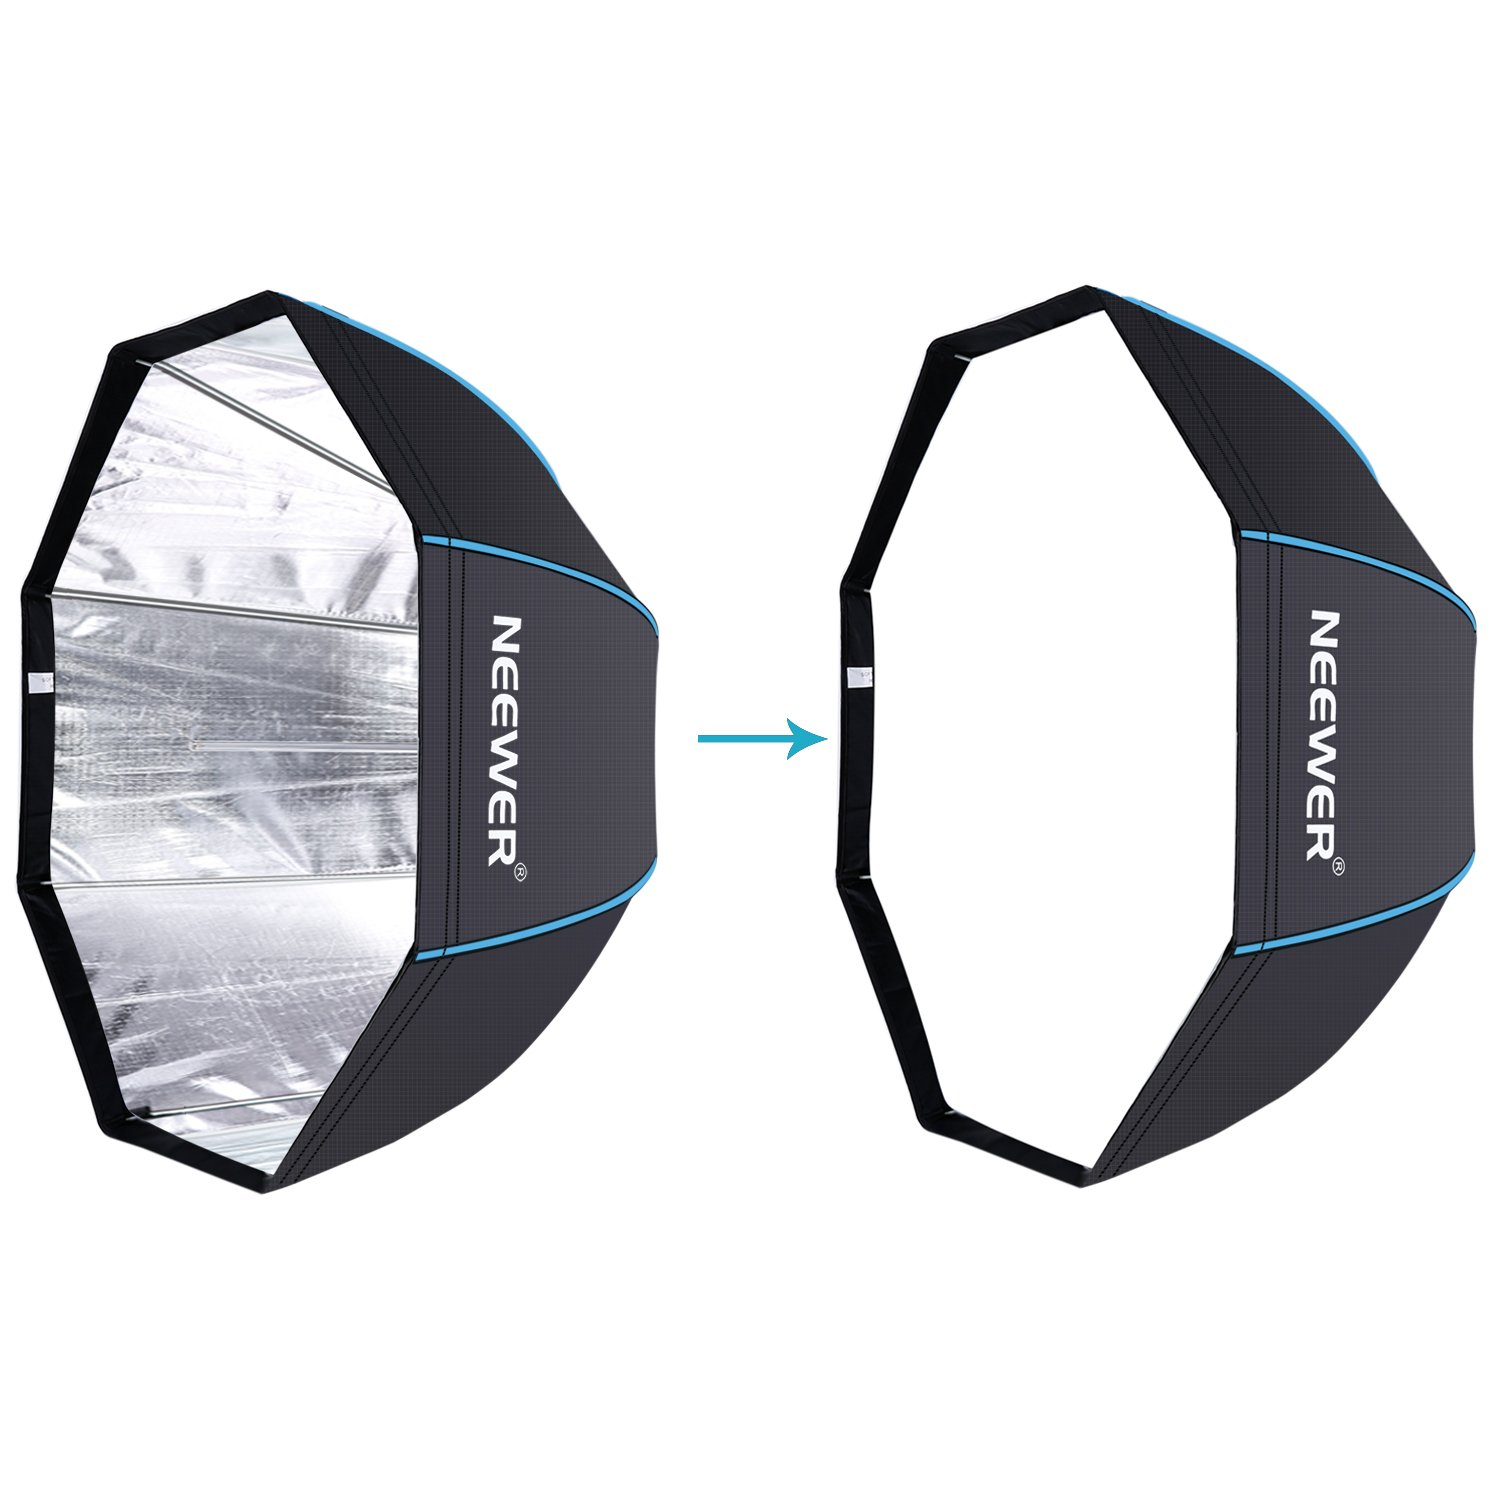 Umbrella Like A Softbox: Neewer 47 Inches/ 120 Centimeters Octagonal Softbox